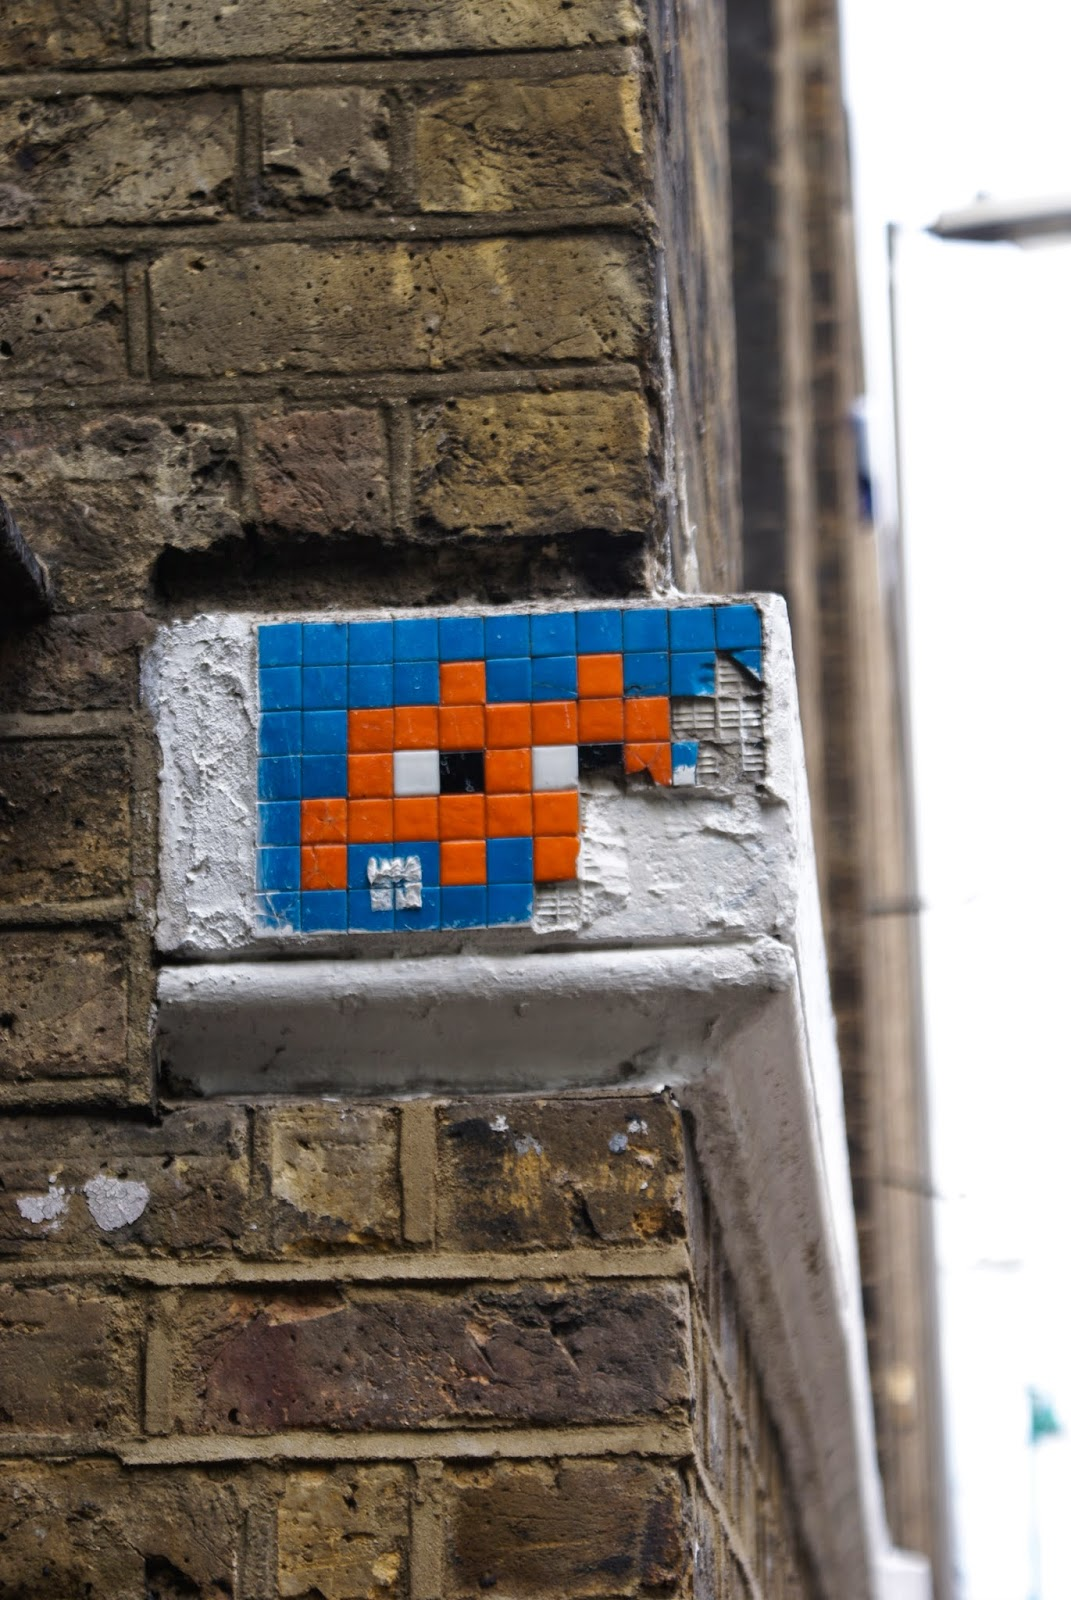 street art space invader pixel brick lane london spitalfields united kingdom uk europe